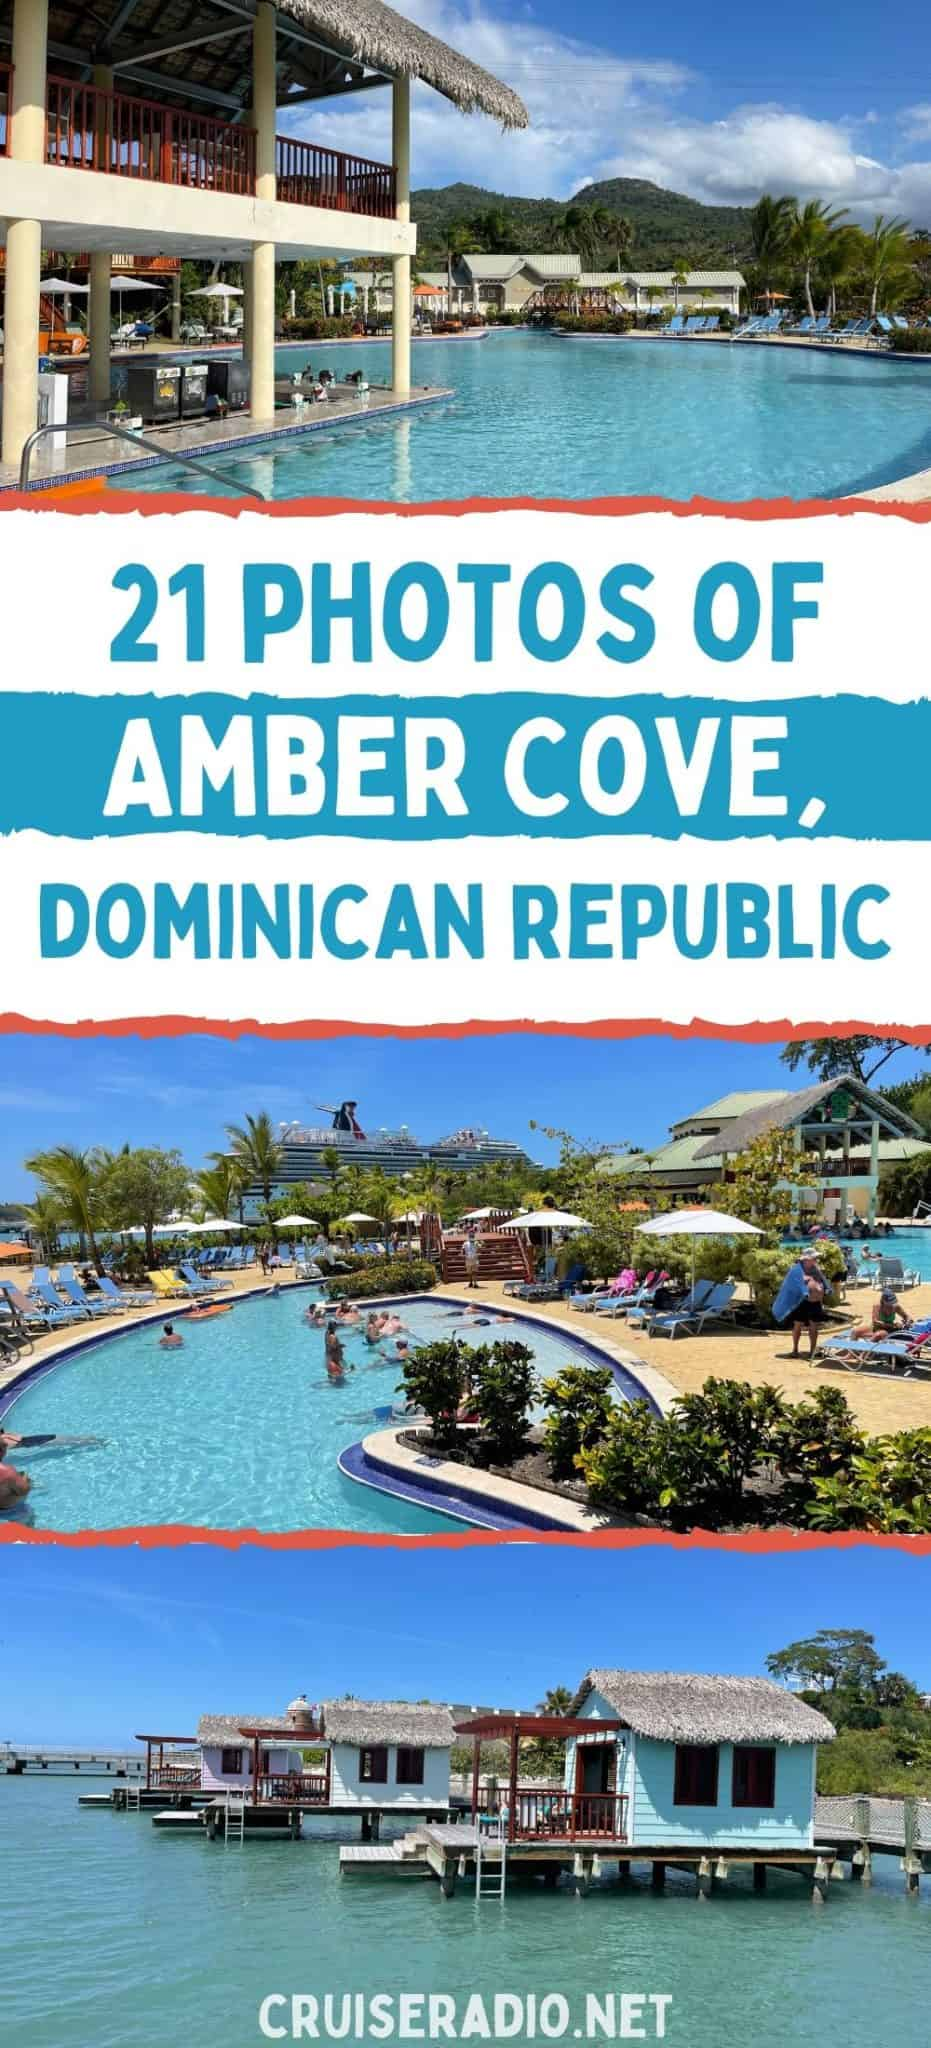 21 photos of amber cove, dominican republic